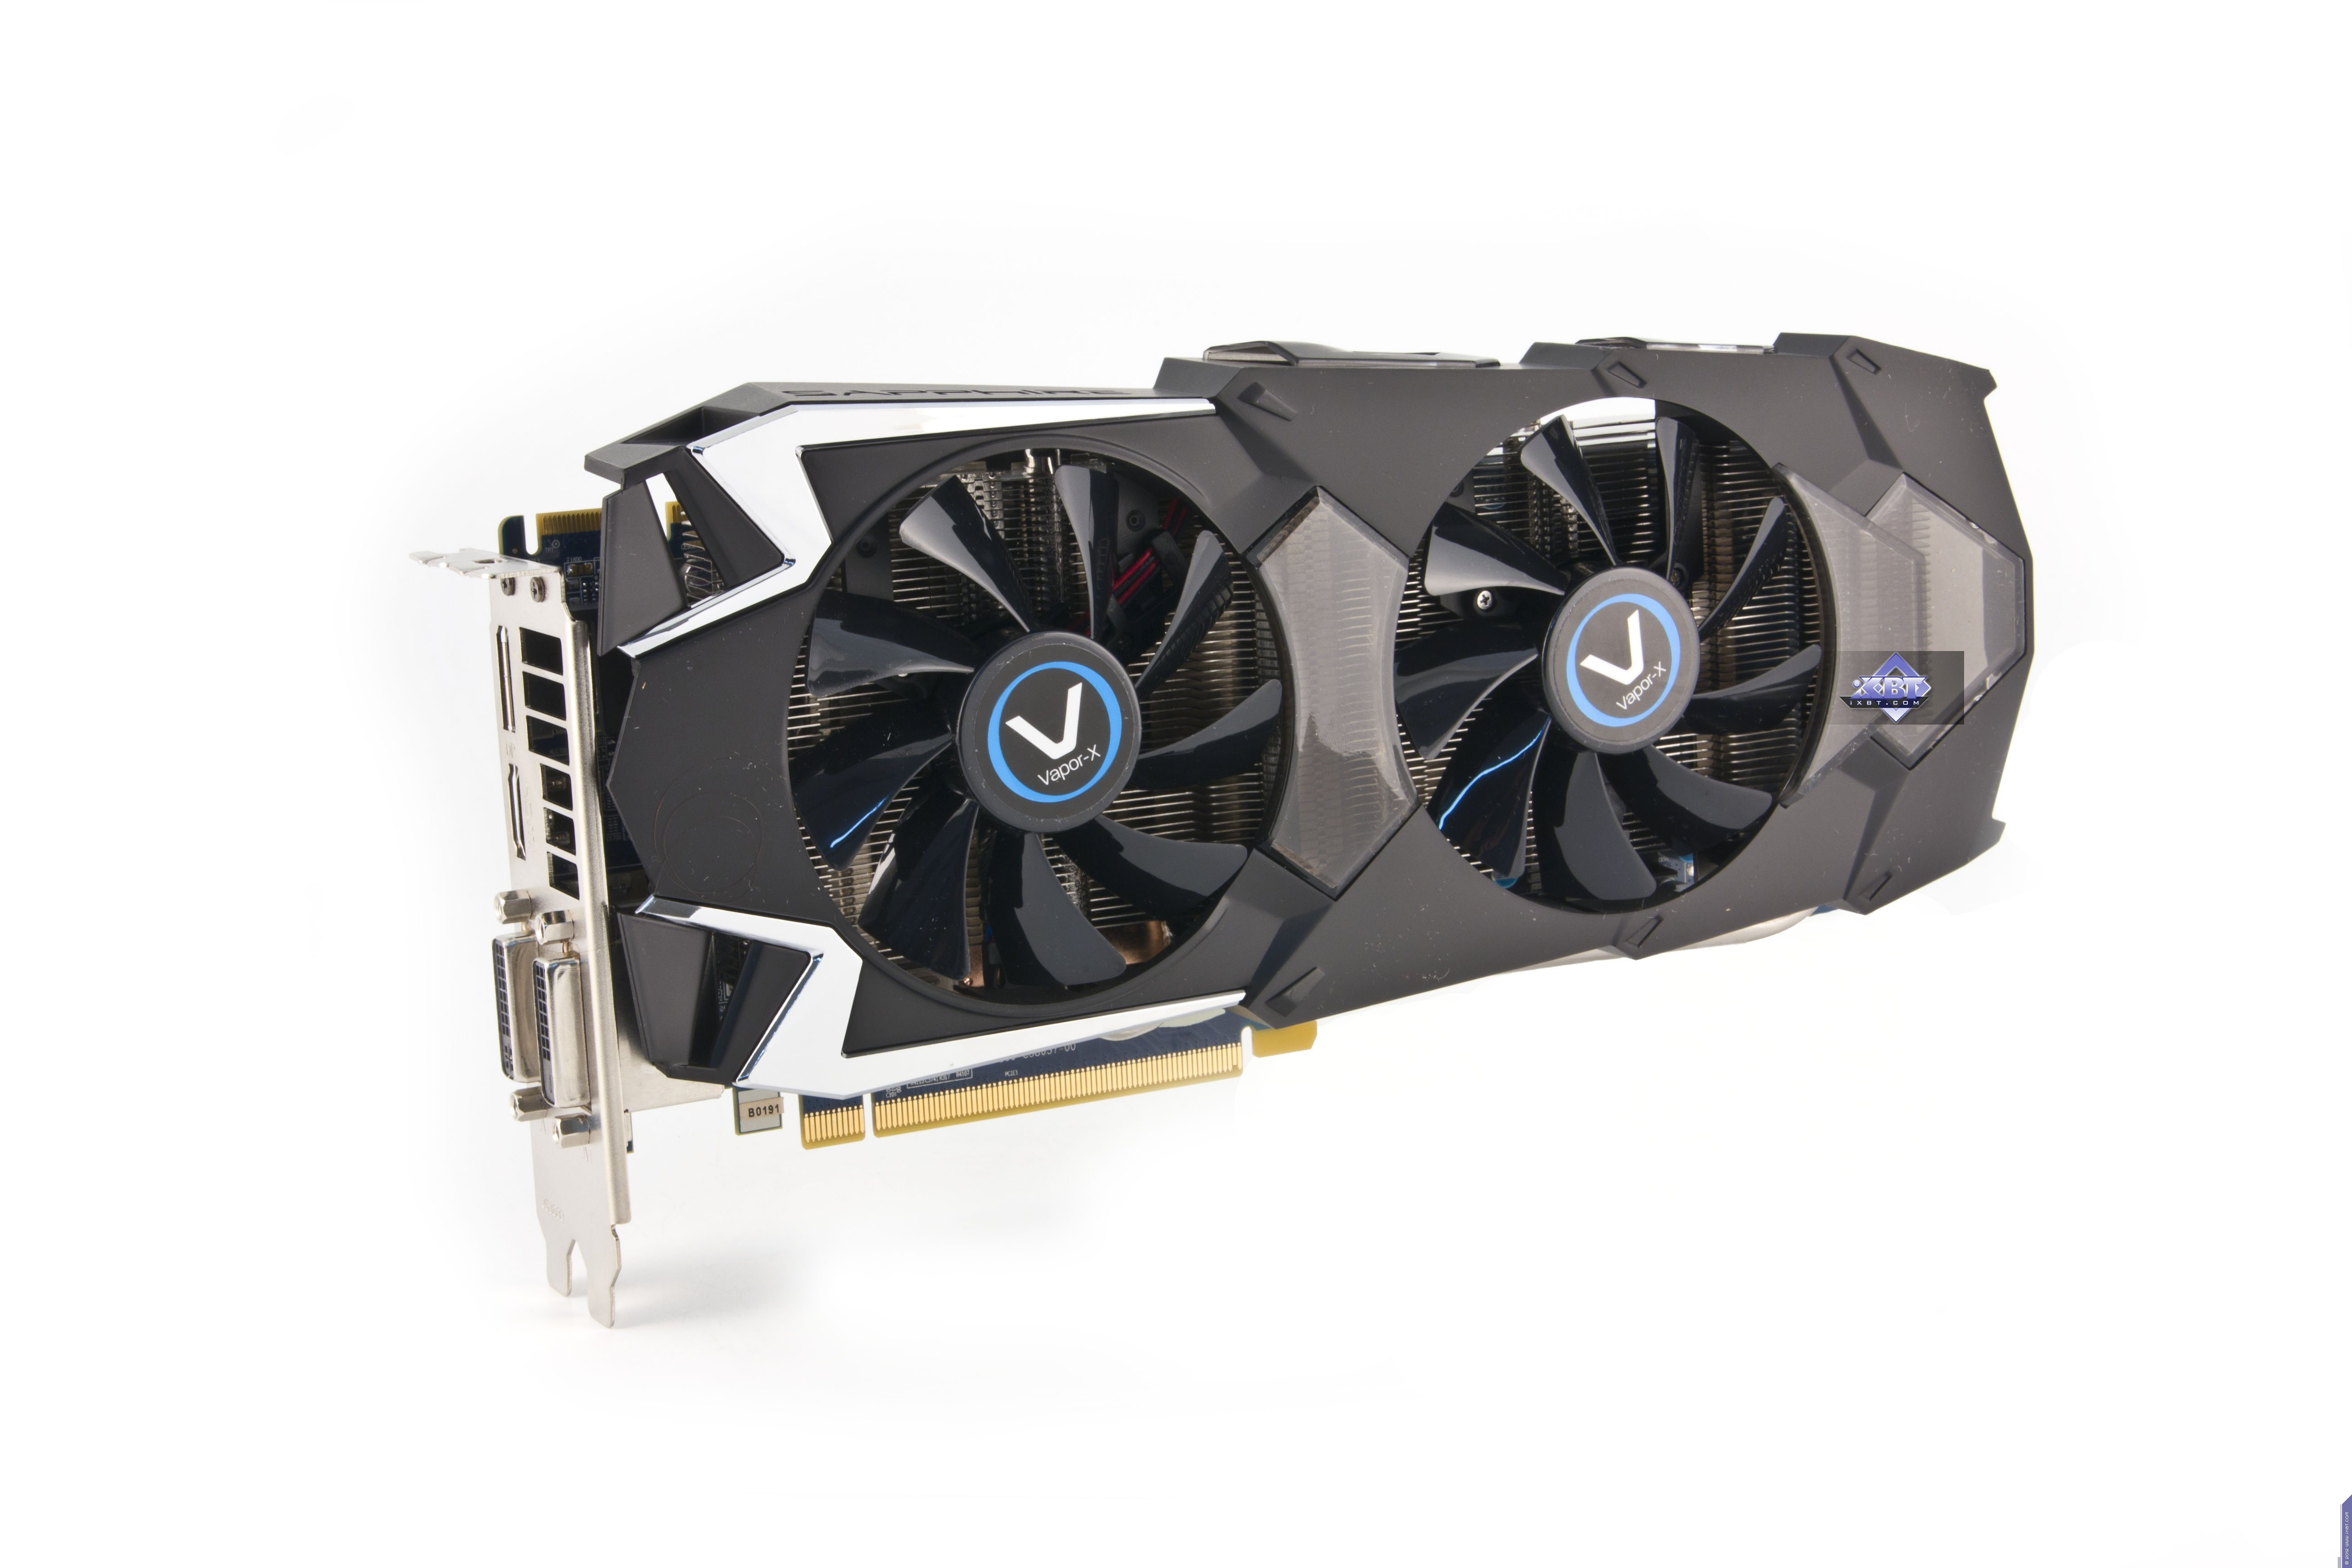 Sapphire Vapor X Hd 7970 Ghz Edition Sapphire Hd 7870 Ghz Flex Edition Sapphire Vapor X Hd 7770 Ghz Edition Oc Sapphire Hd 7750 Low Profile Graphics Cards Page 1 Intro Specs